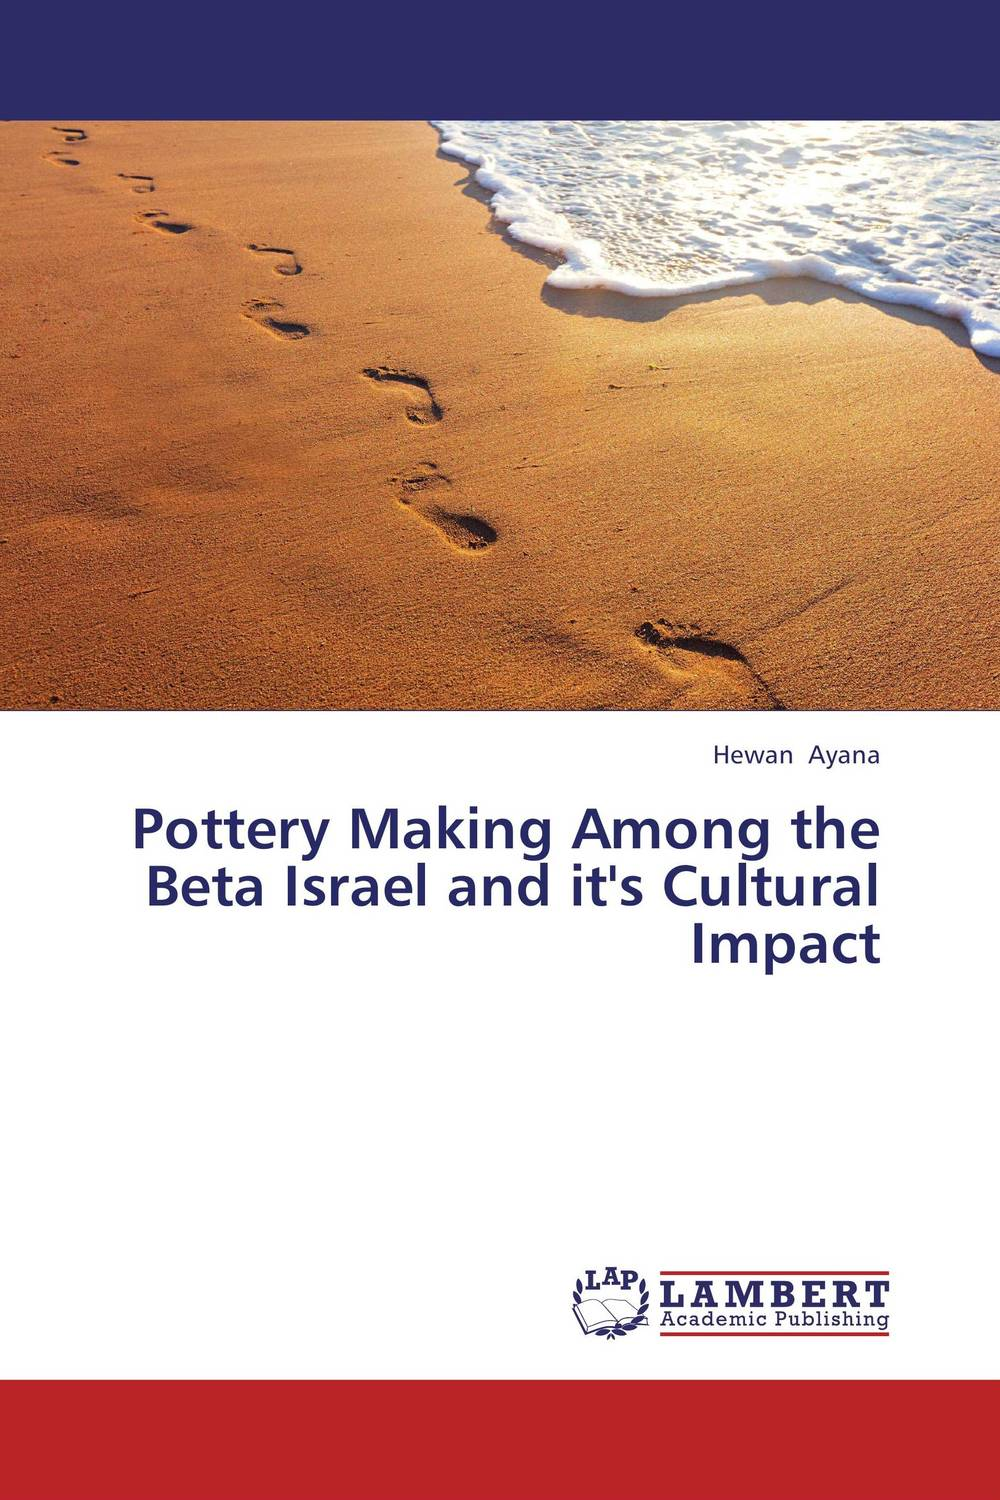 Pottery Making Among the Beta Israel and it's Cultural Impact painted by a distant hand – mimbres pottery of the american southwest